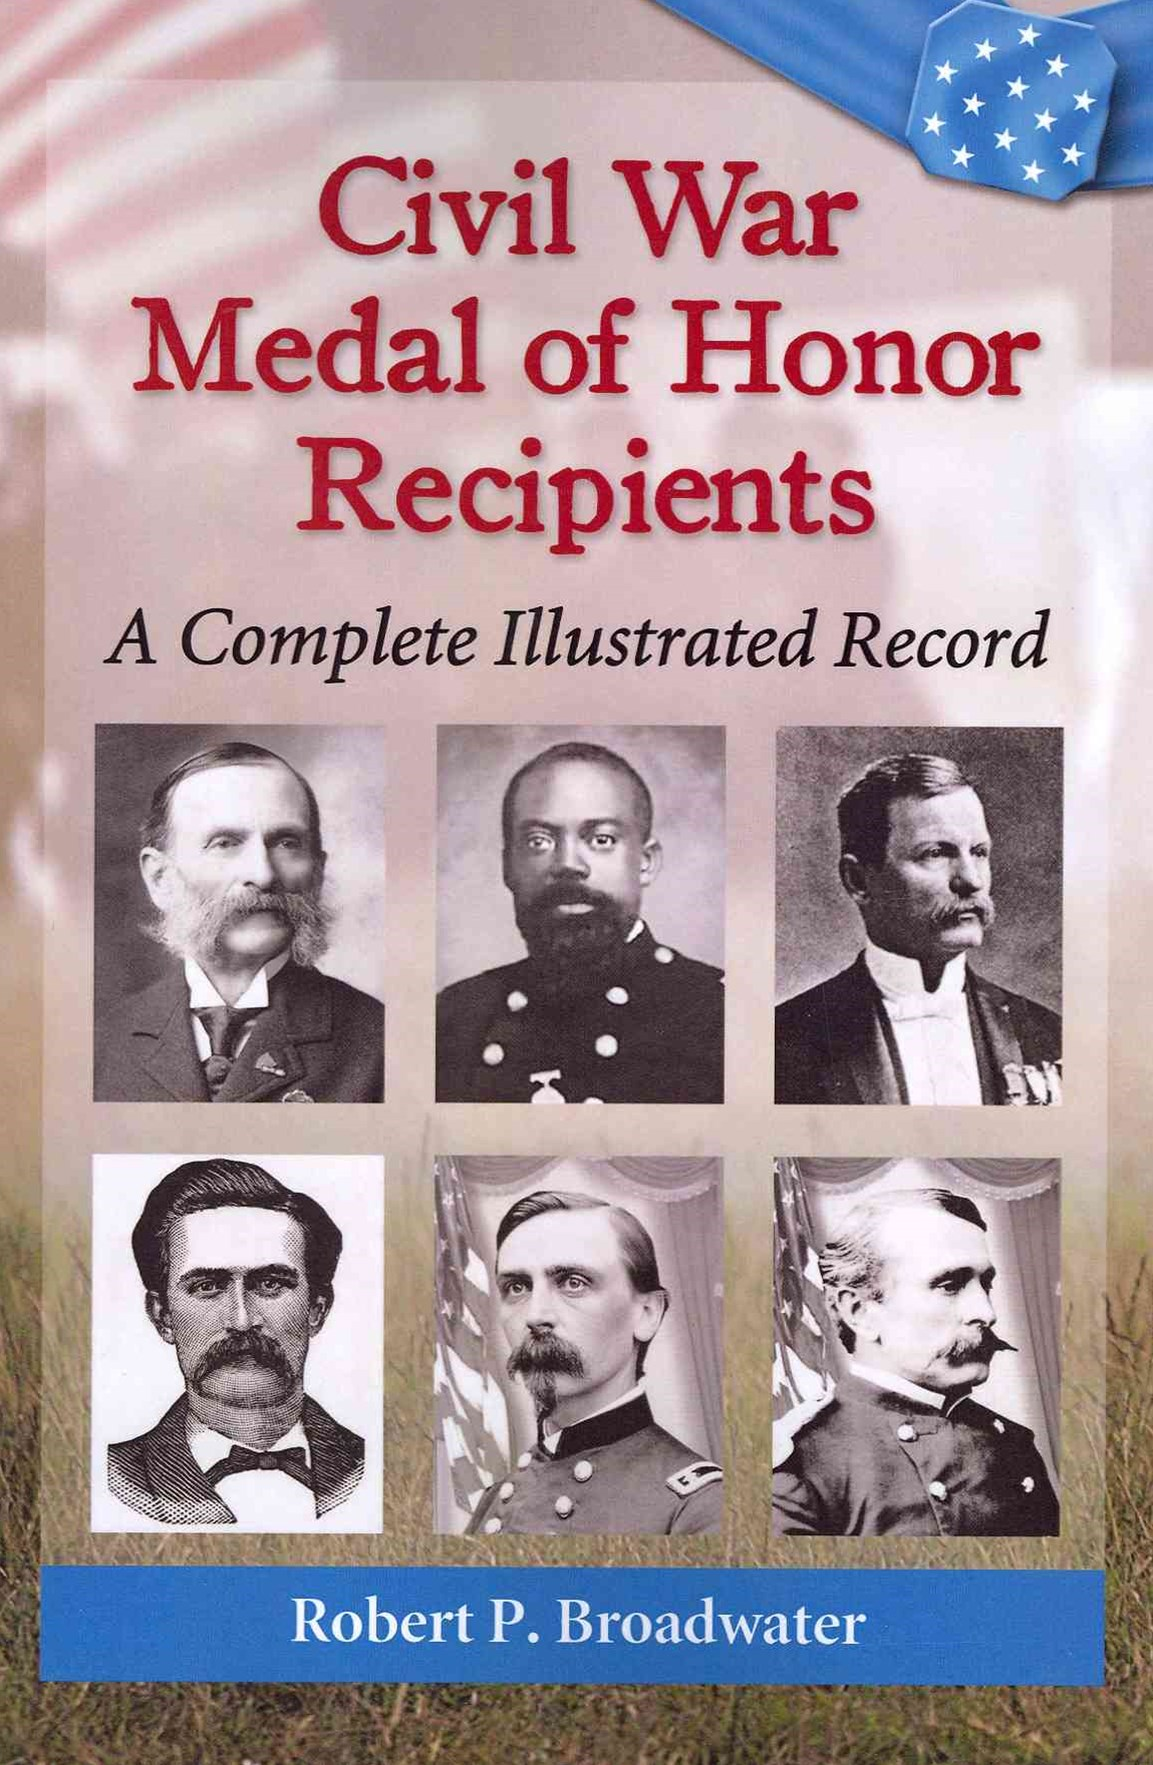 Civil War Medal of Honor Recipients